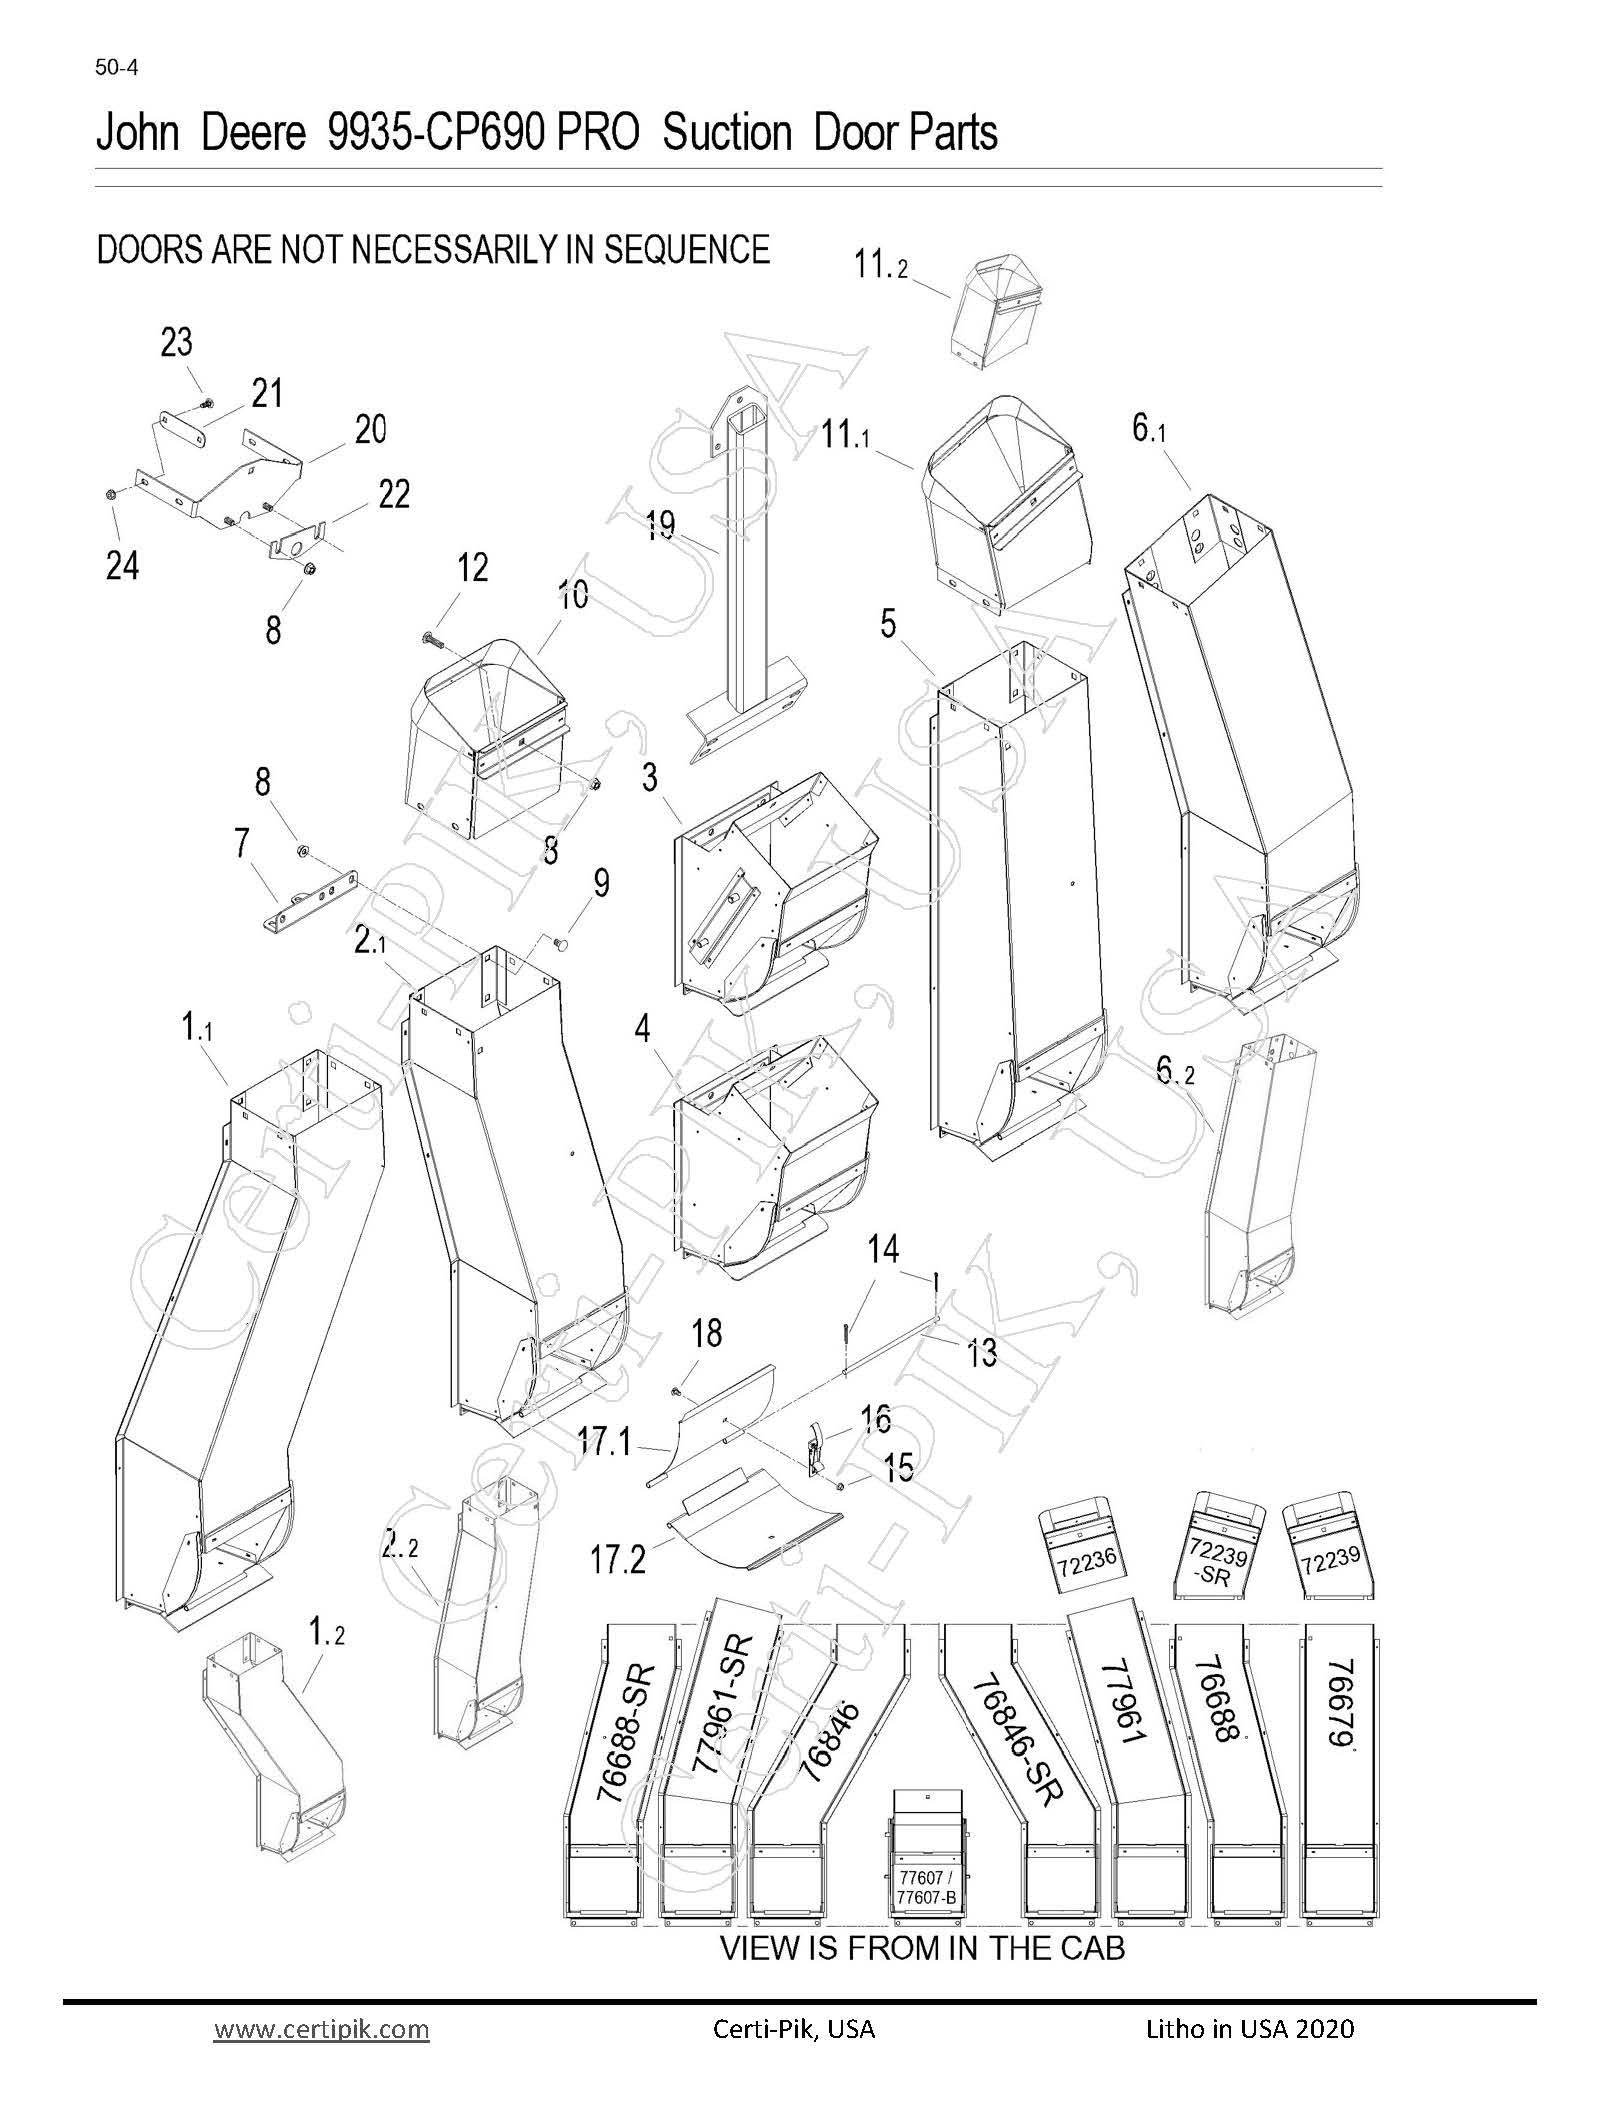 30p1 50 4 Jd 9935 Cp690 Pro Suction Door Parts Page 1